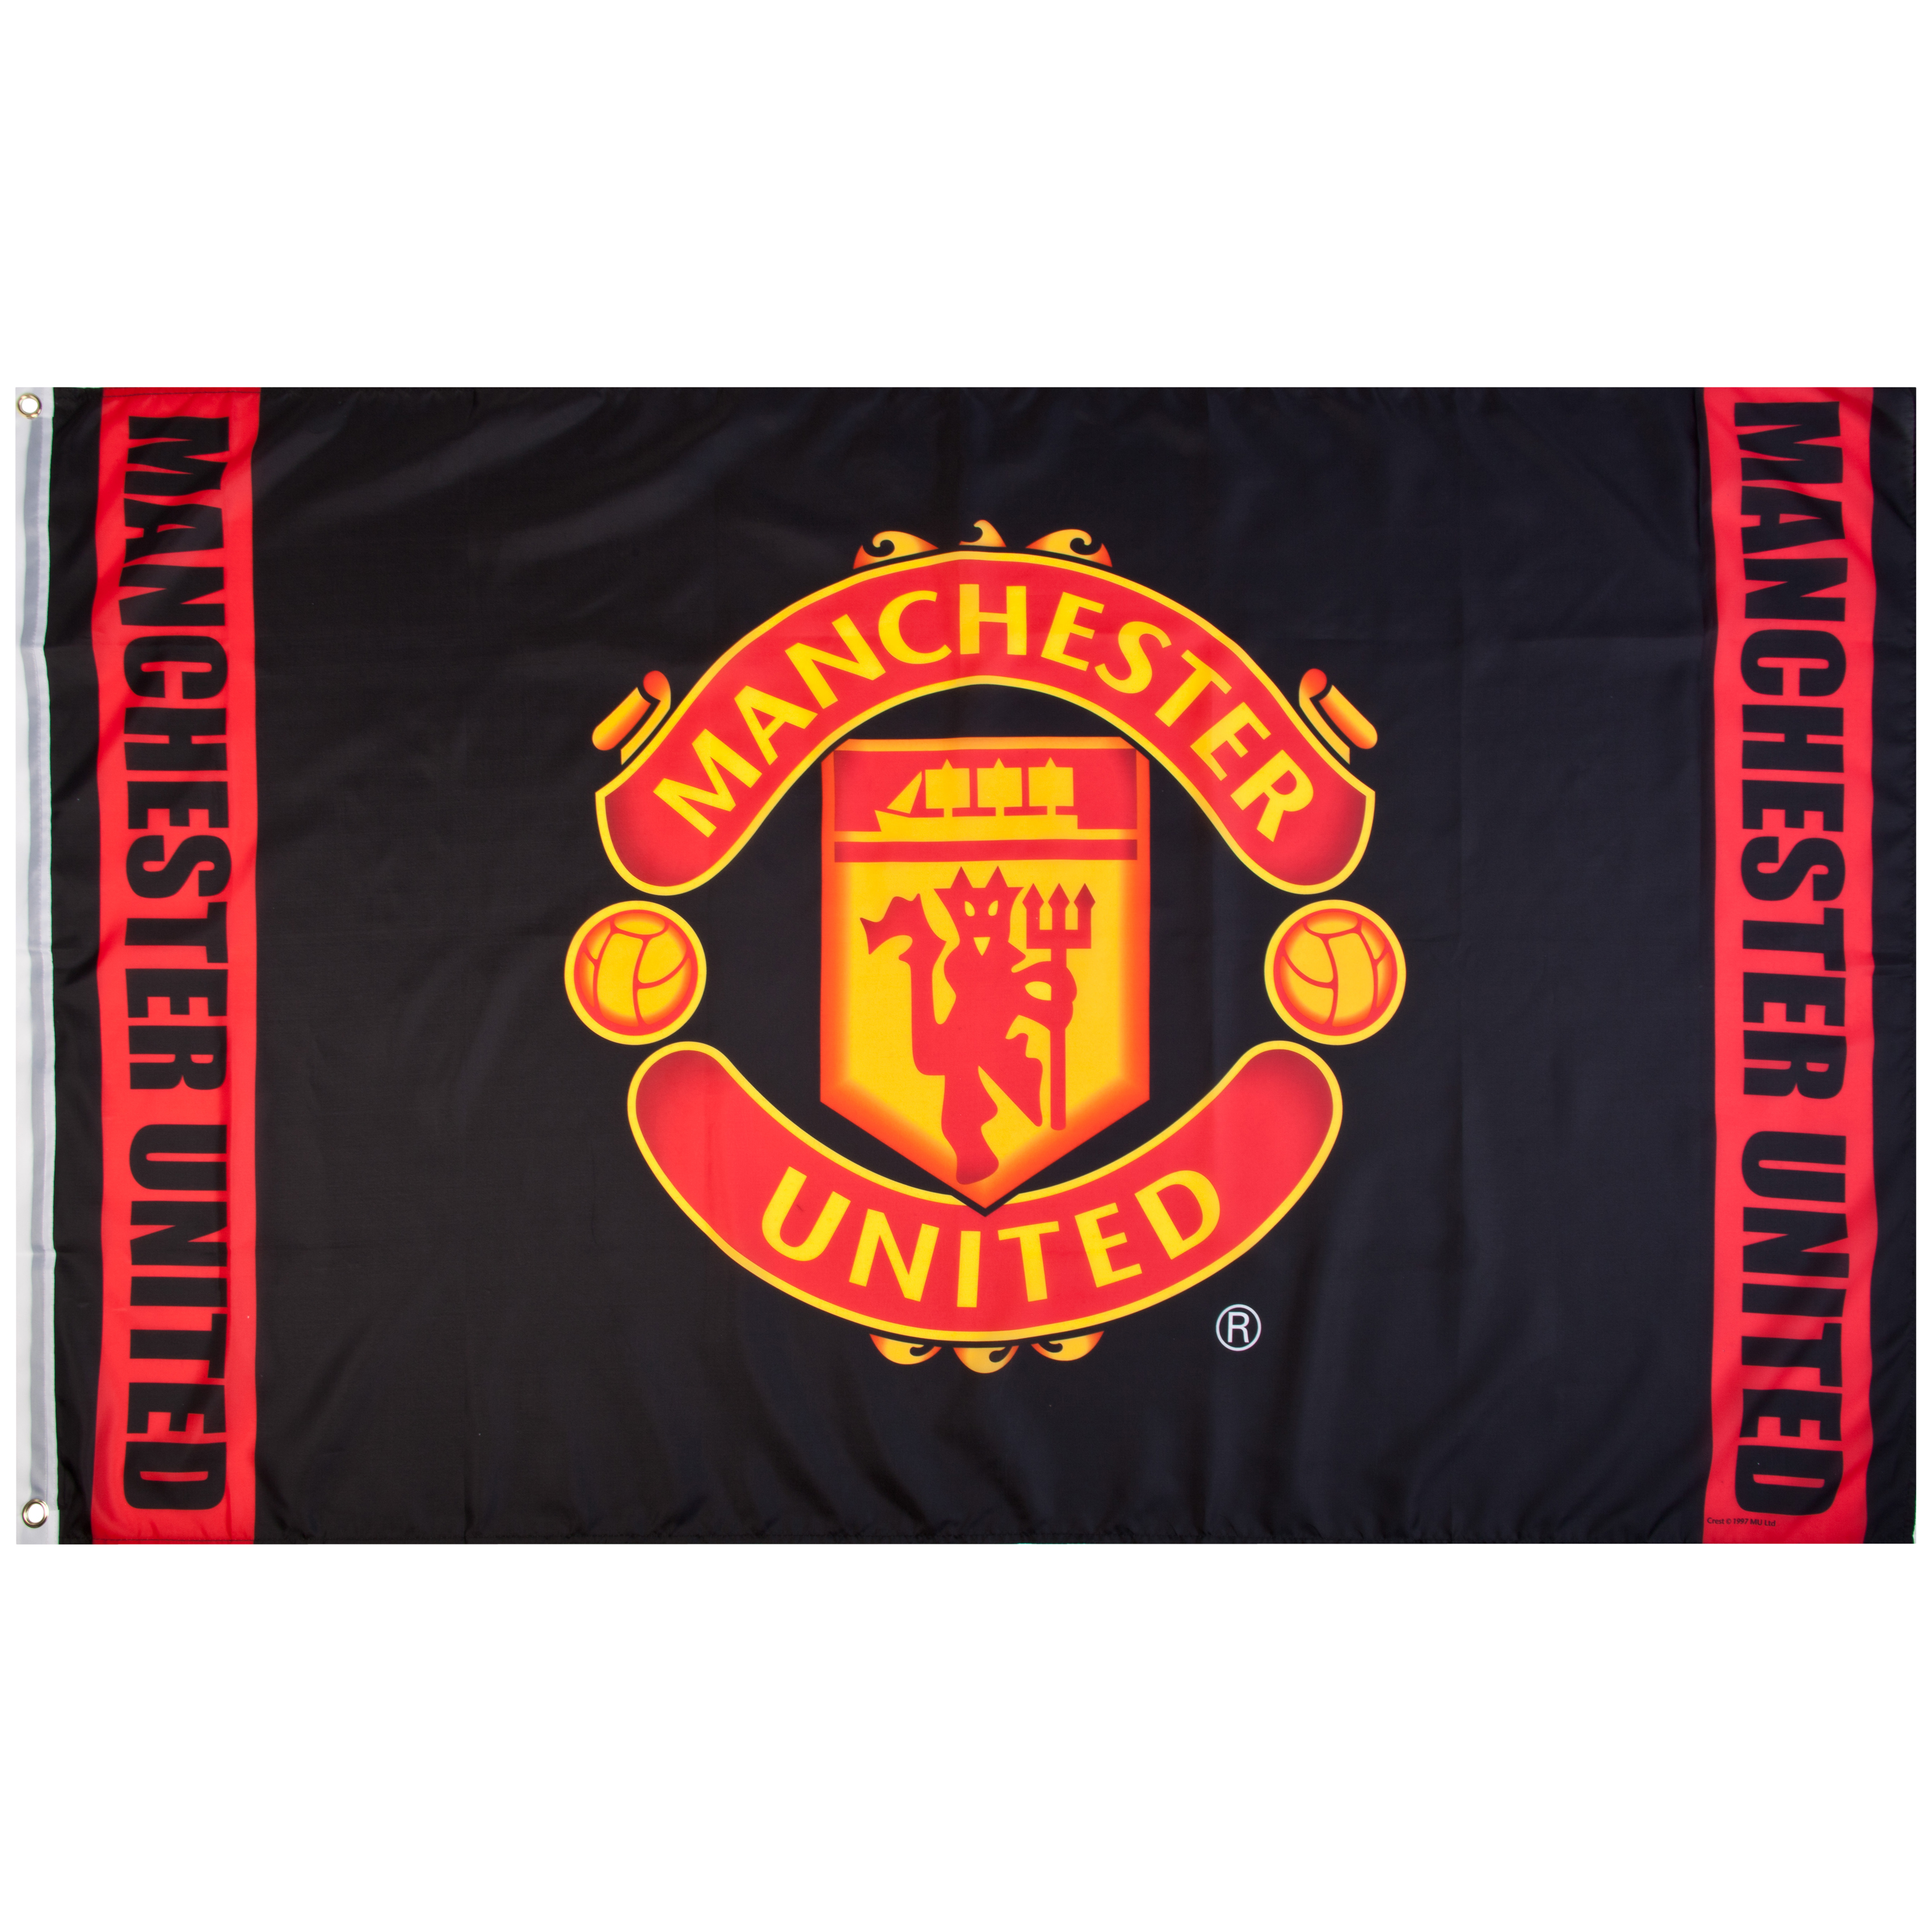 Manchester United Crest Flag - 5 x 3